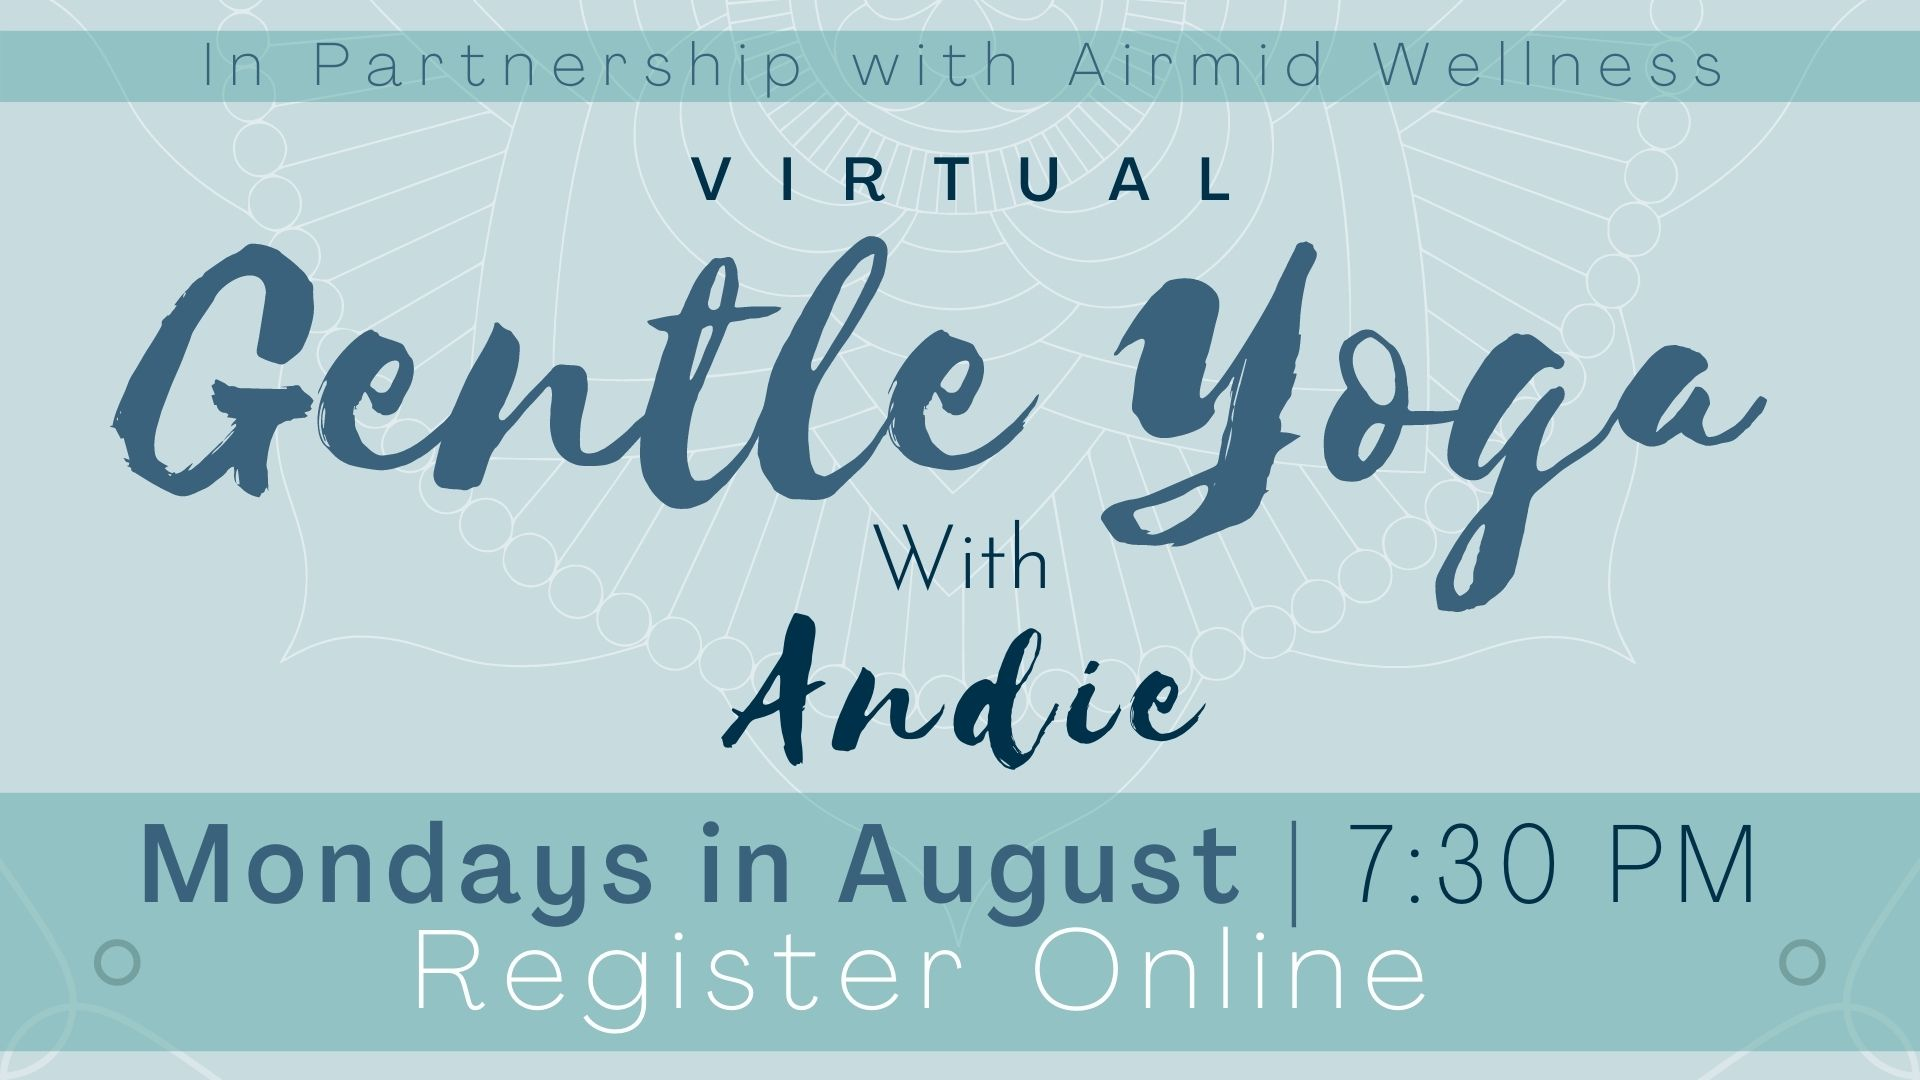 Virtual Gentle Yoga with Andie